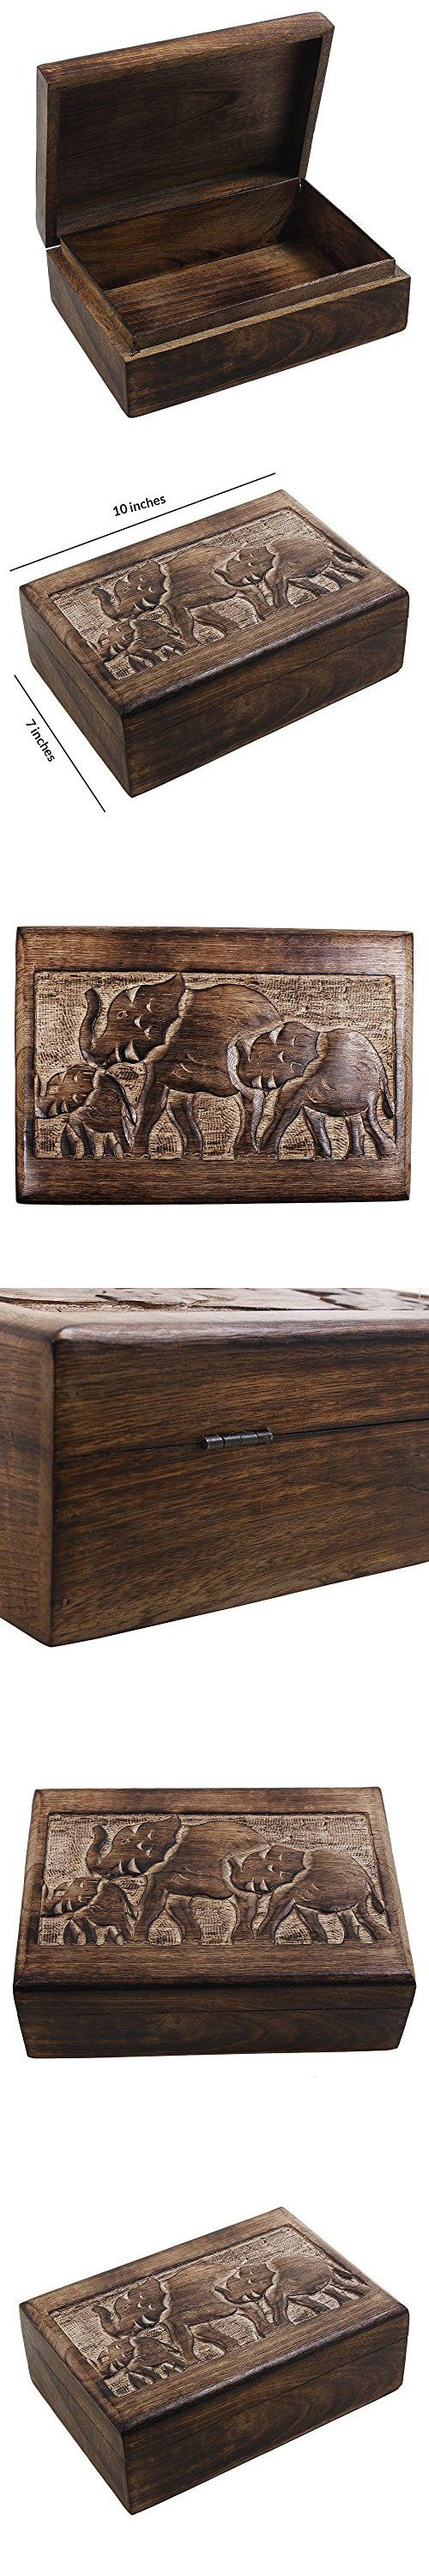 Rakhi Gift for Sister Country Rustic Wooden Keepsake Storage Box Jewelry Organizer Multipurpose with Hand Carved Elephant Motif